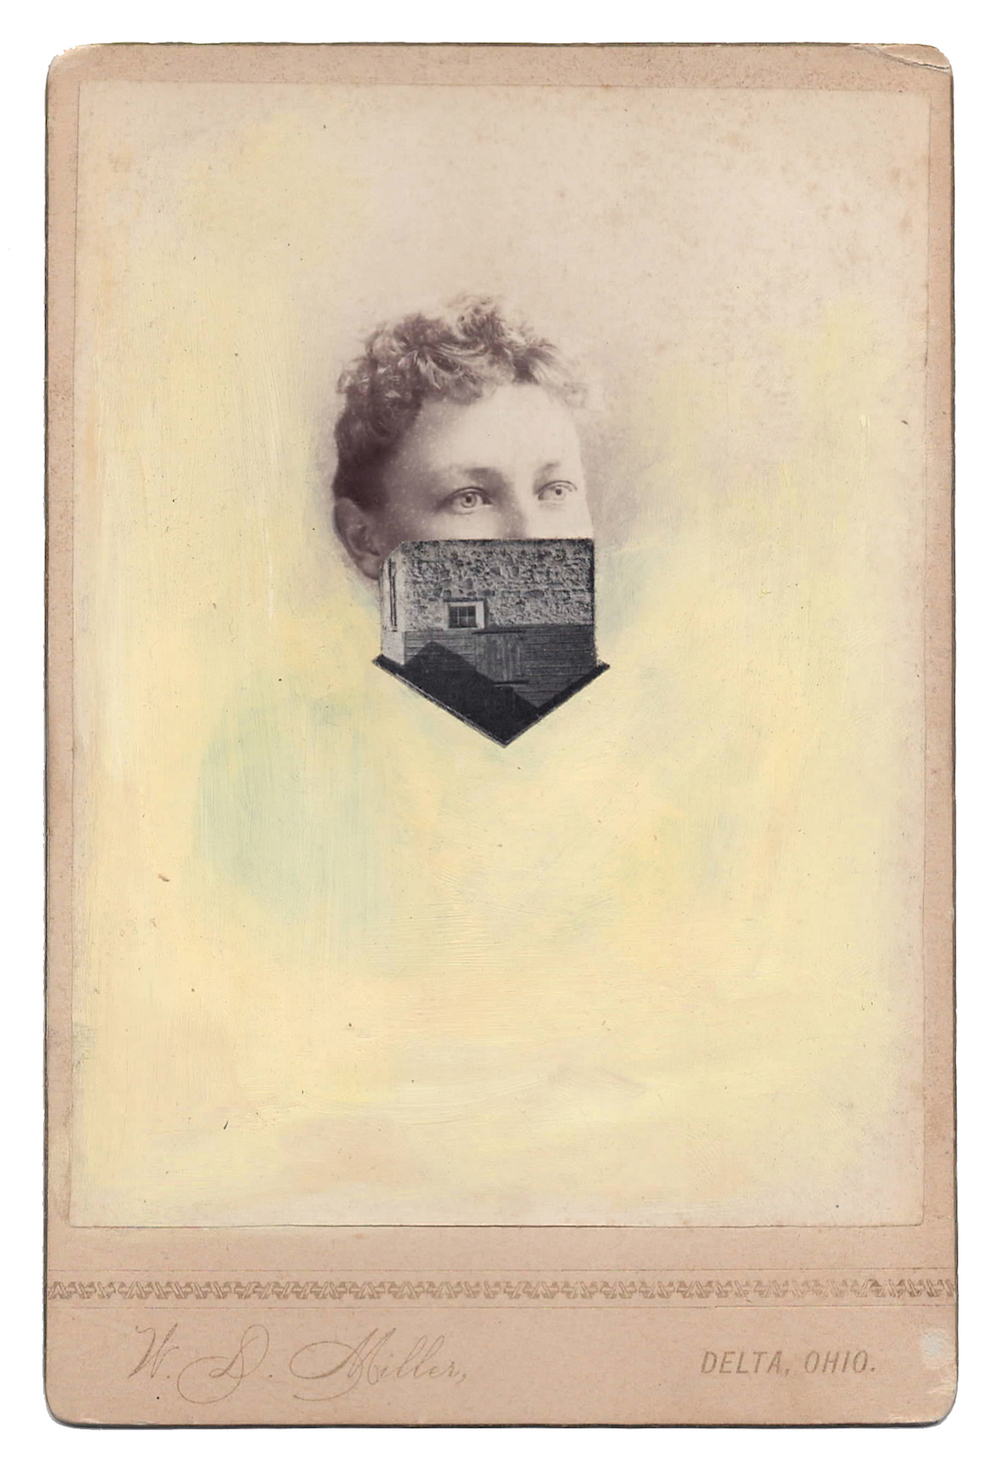 Myopia 4, 2014, Found Photographs, Collage, & Acrylic, 6.5 x 4.25 inches